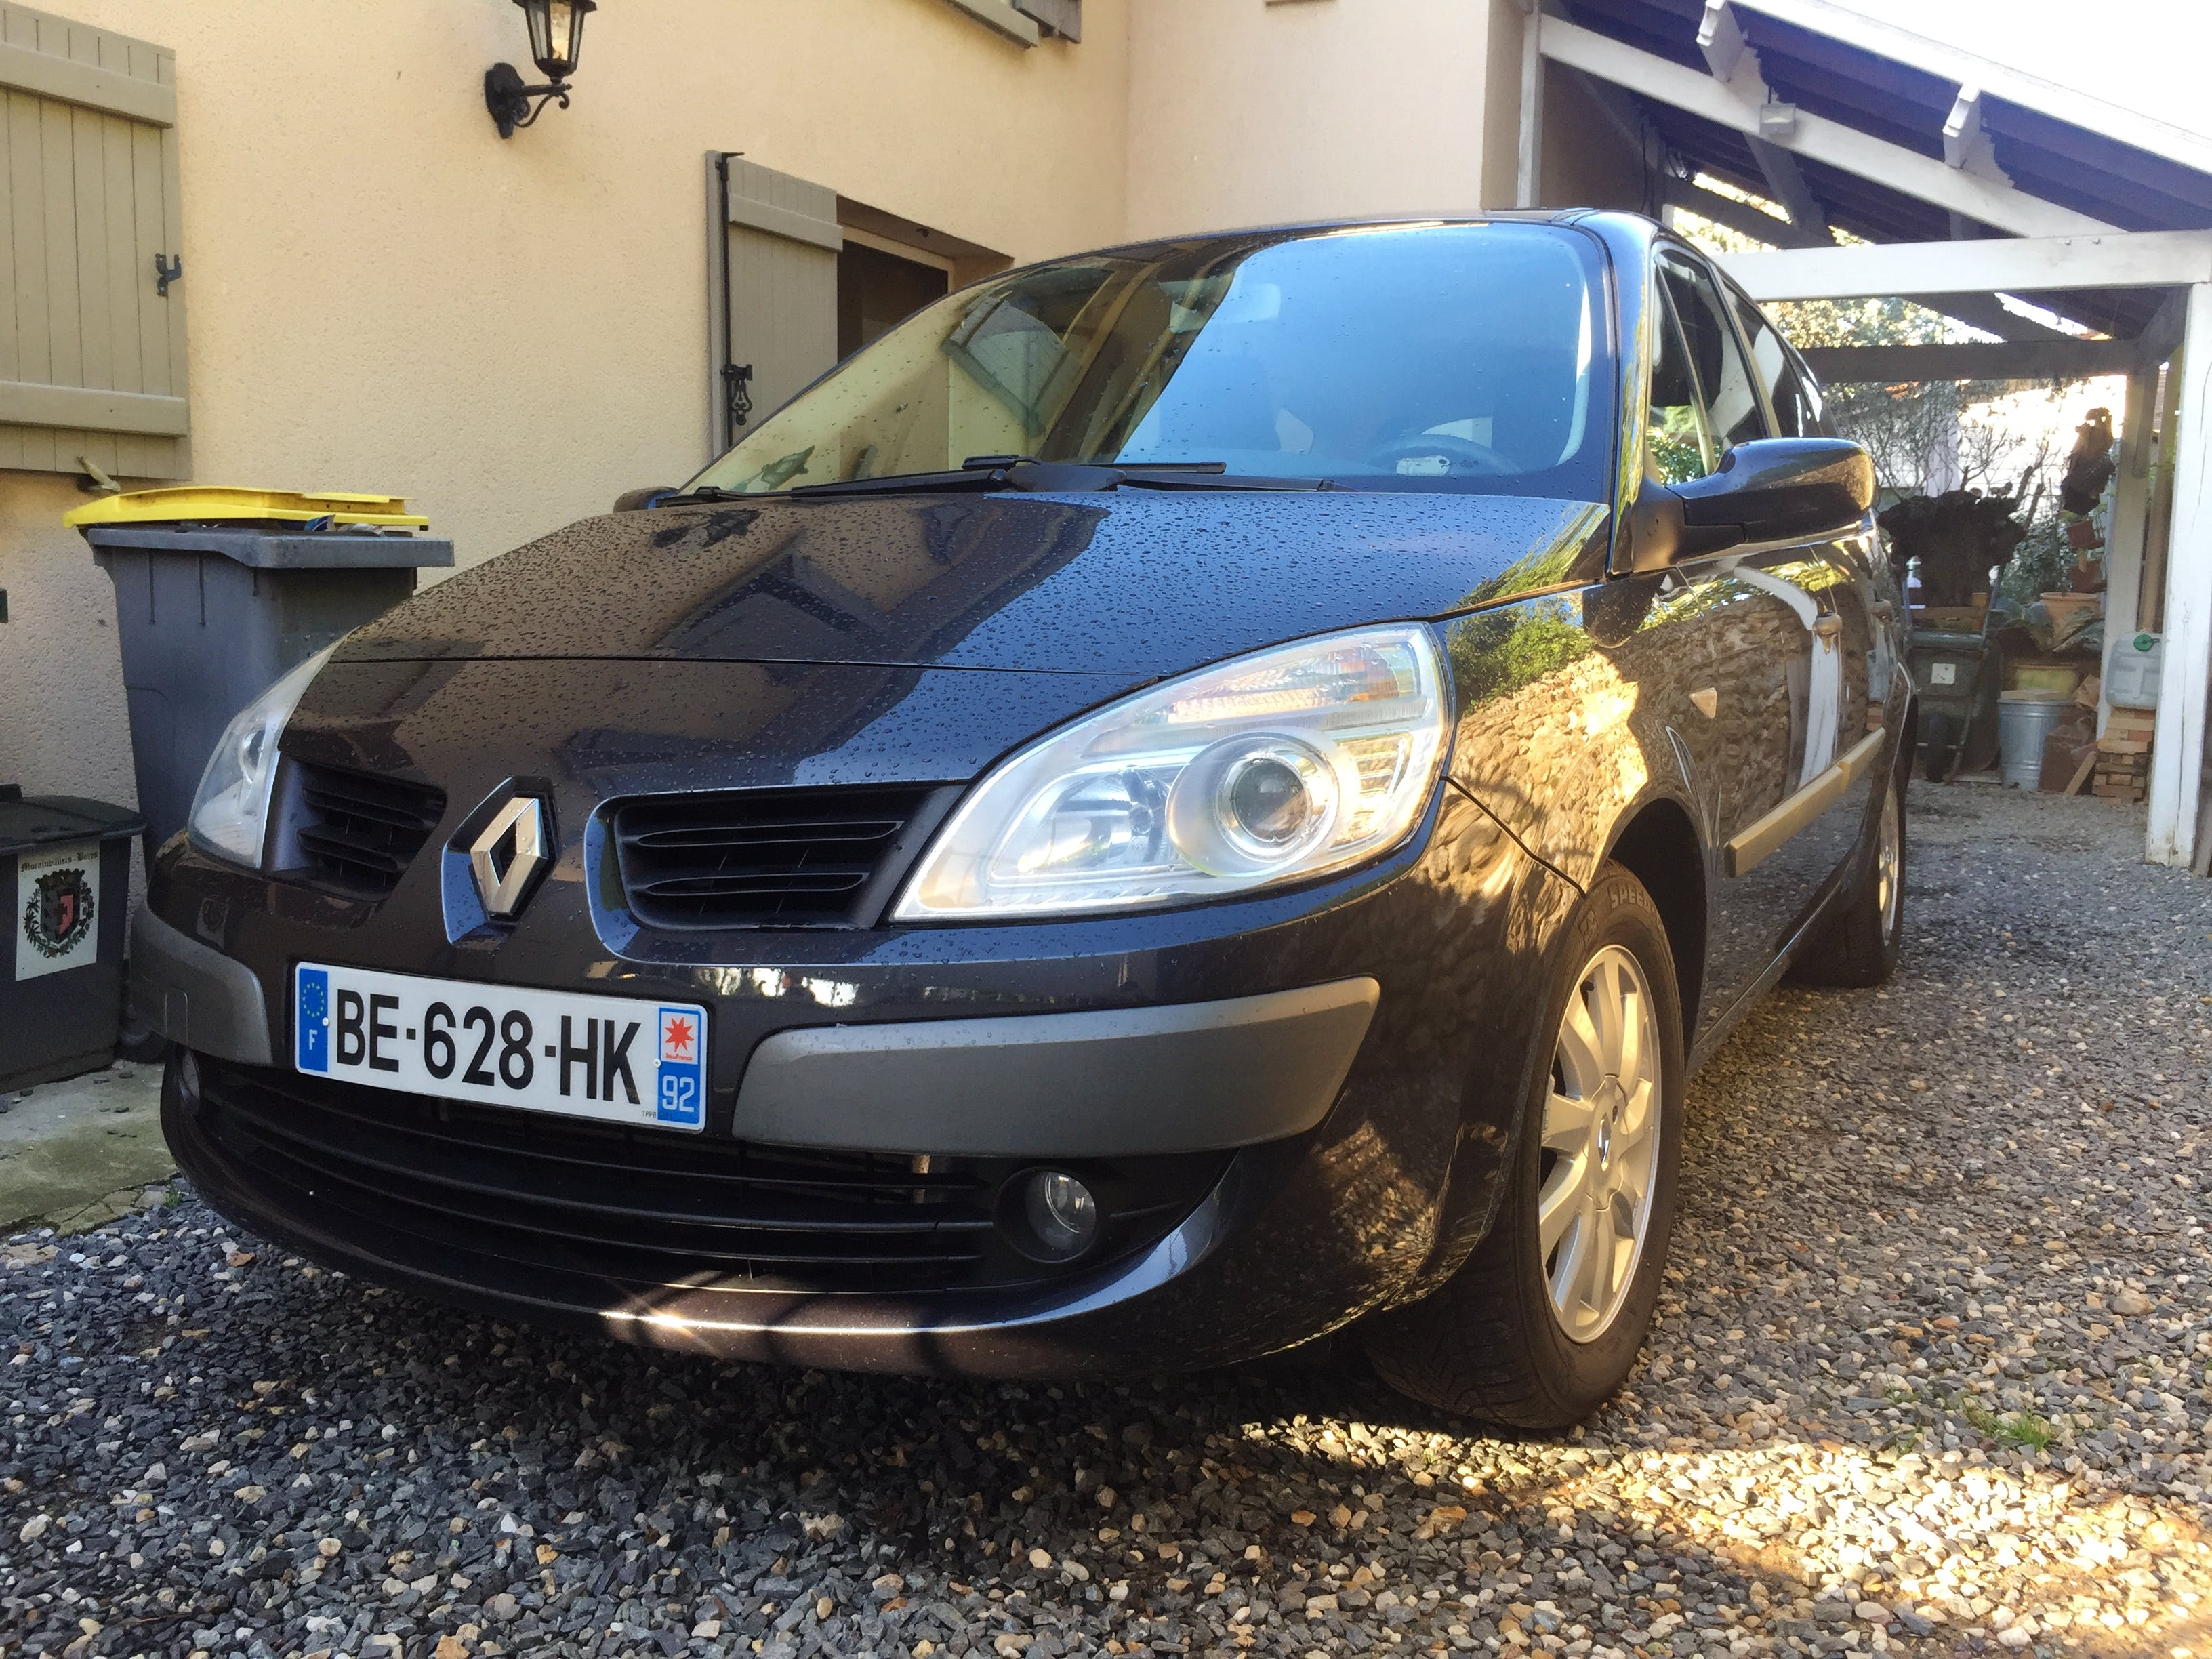 Renault Grand Scénic 1.9 dci 115ch, 2007, Diesel, 7 places